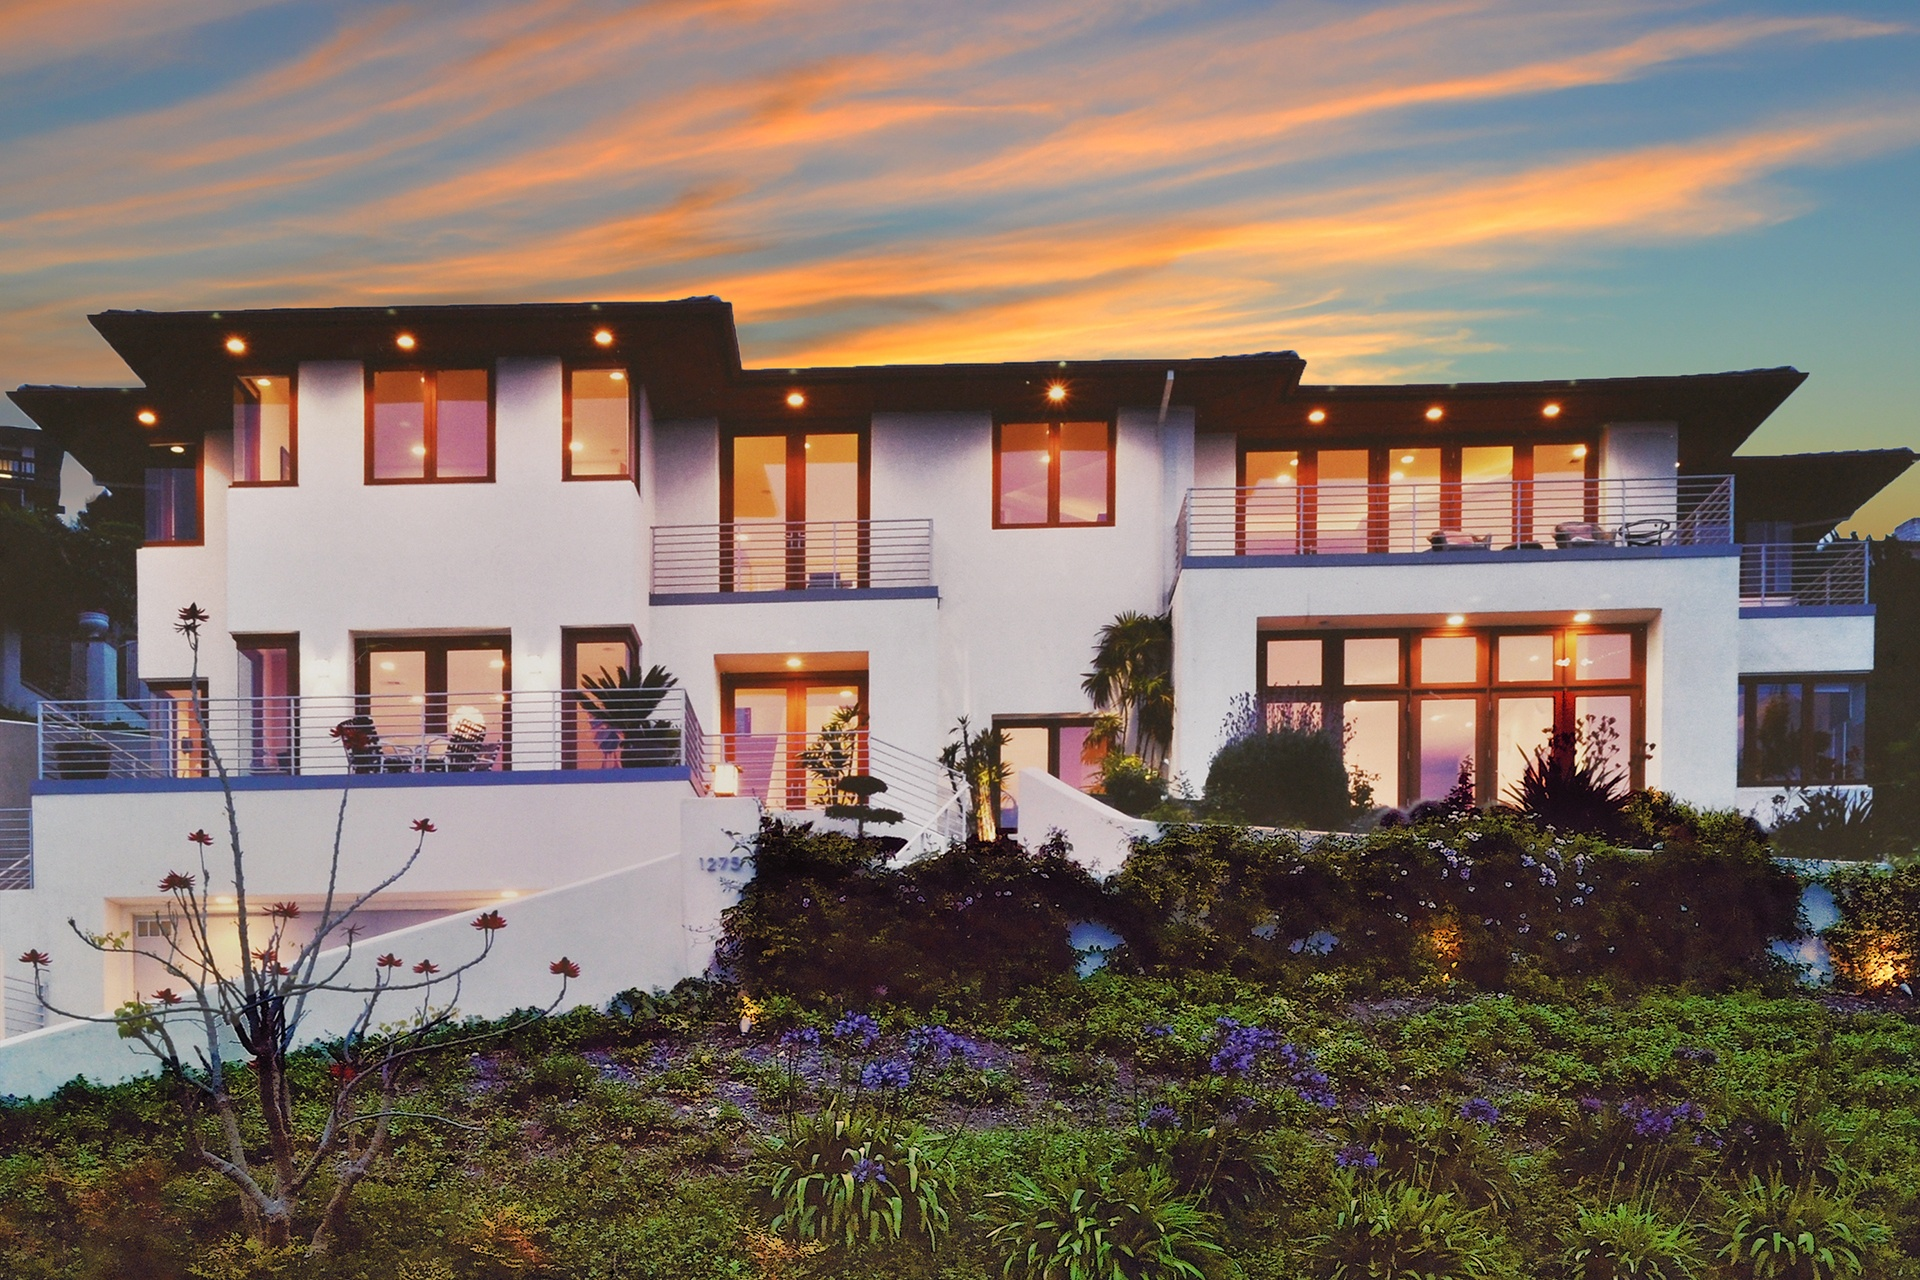 At one with its setting, this light-filled home in Southern California pays homage to Frank Lloyd Wright's distinctive Prairie Style.